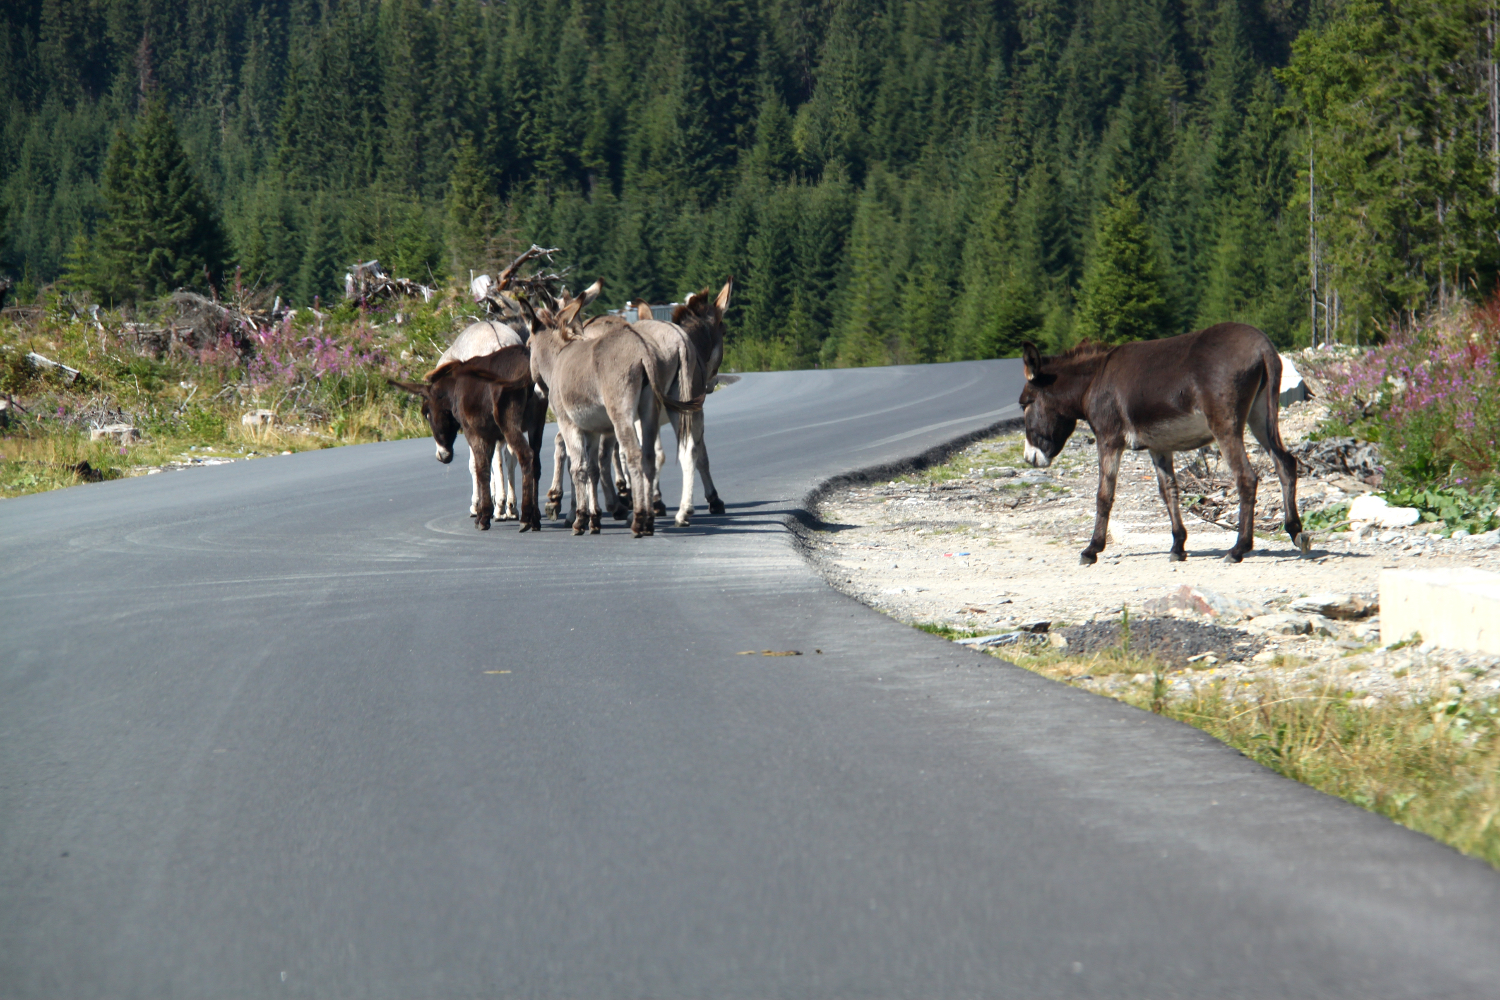 Donkeys crossing the street